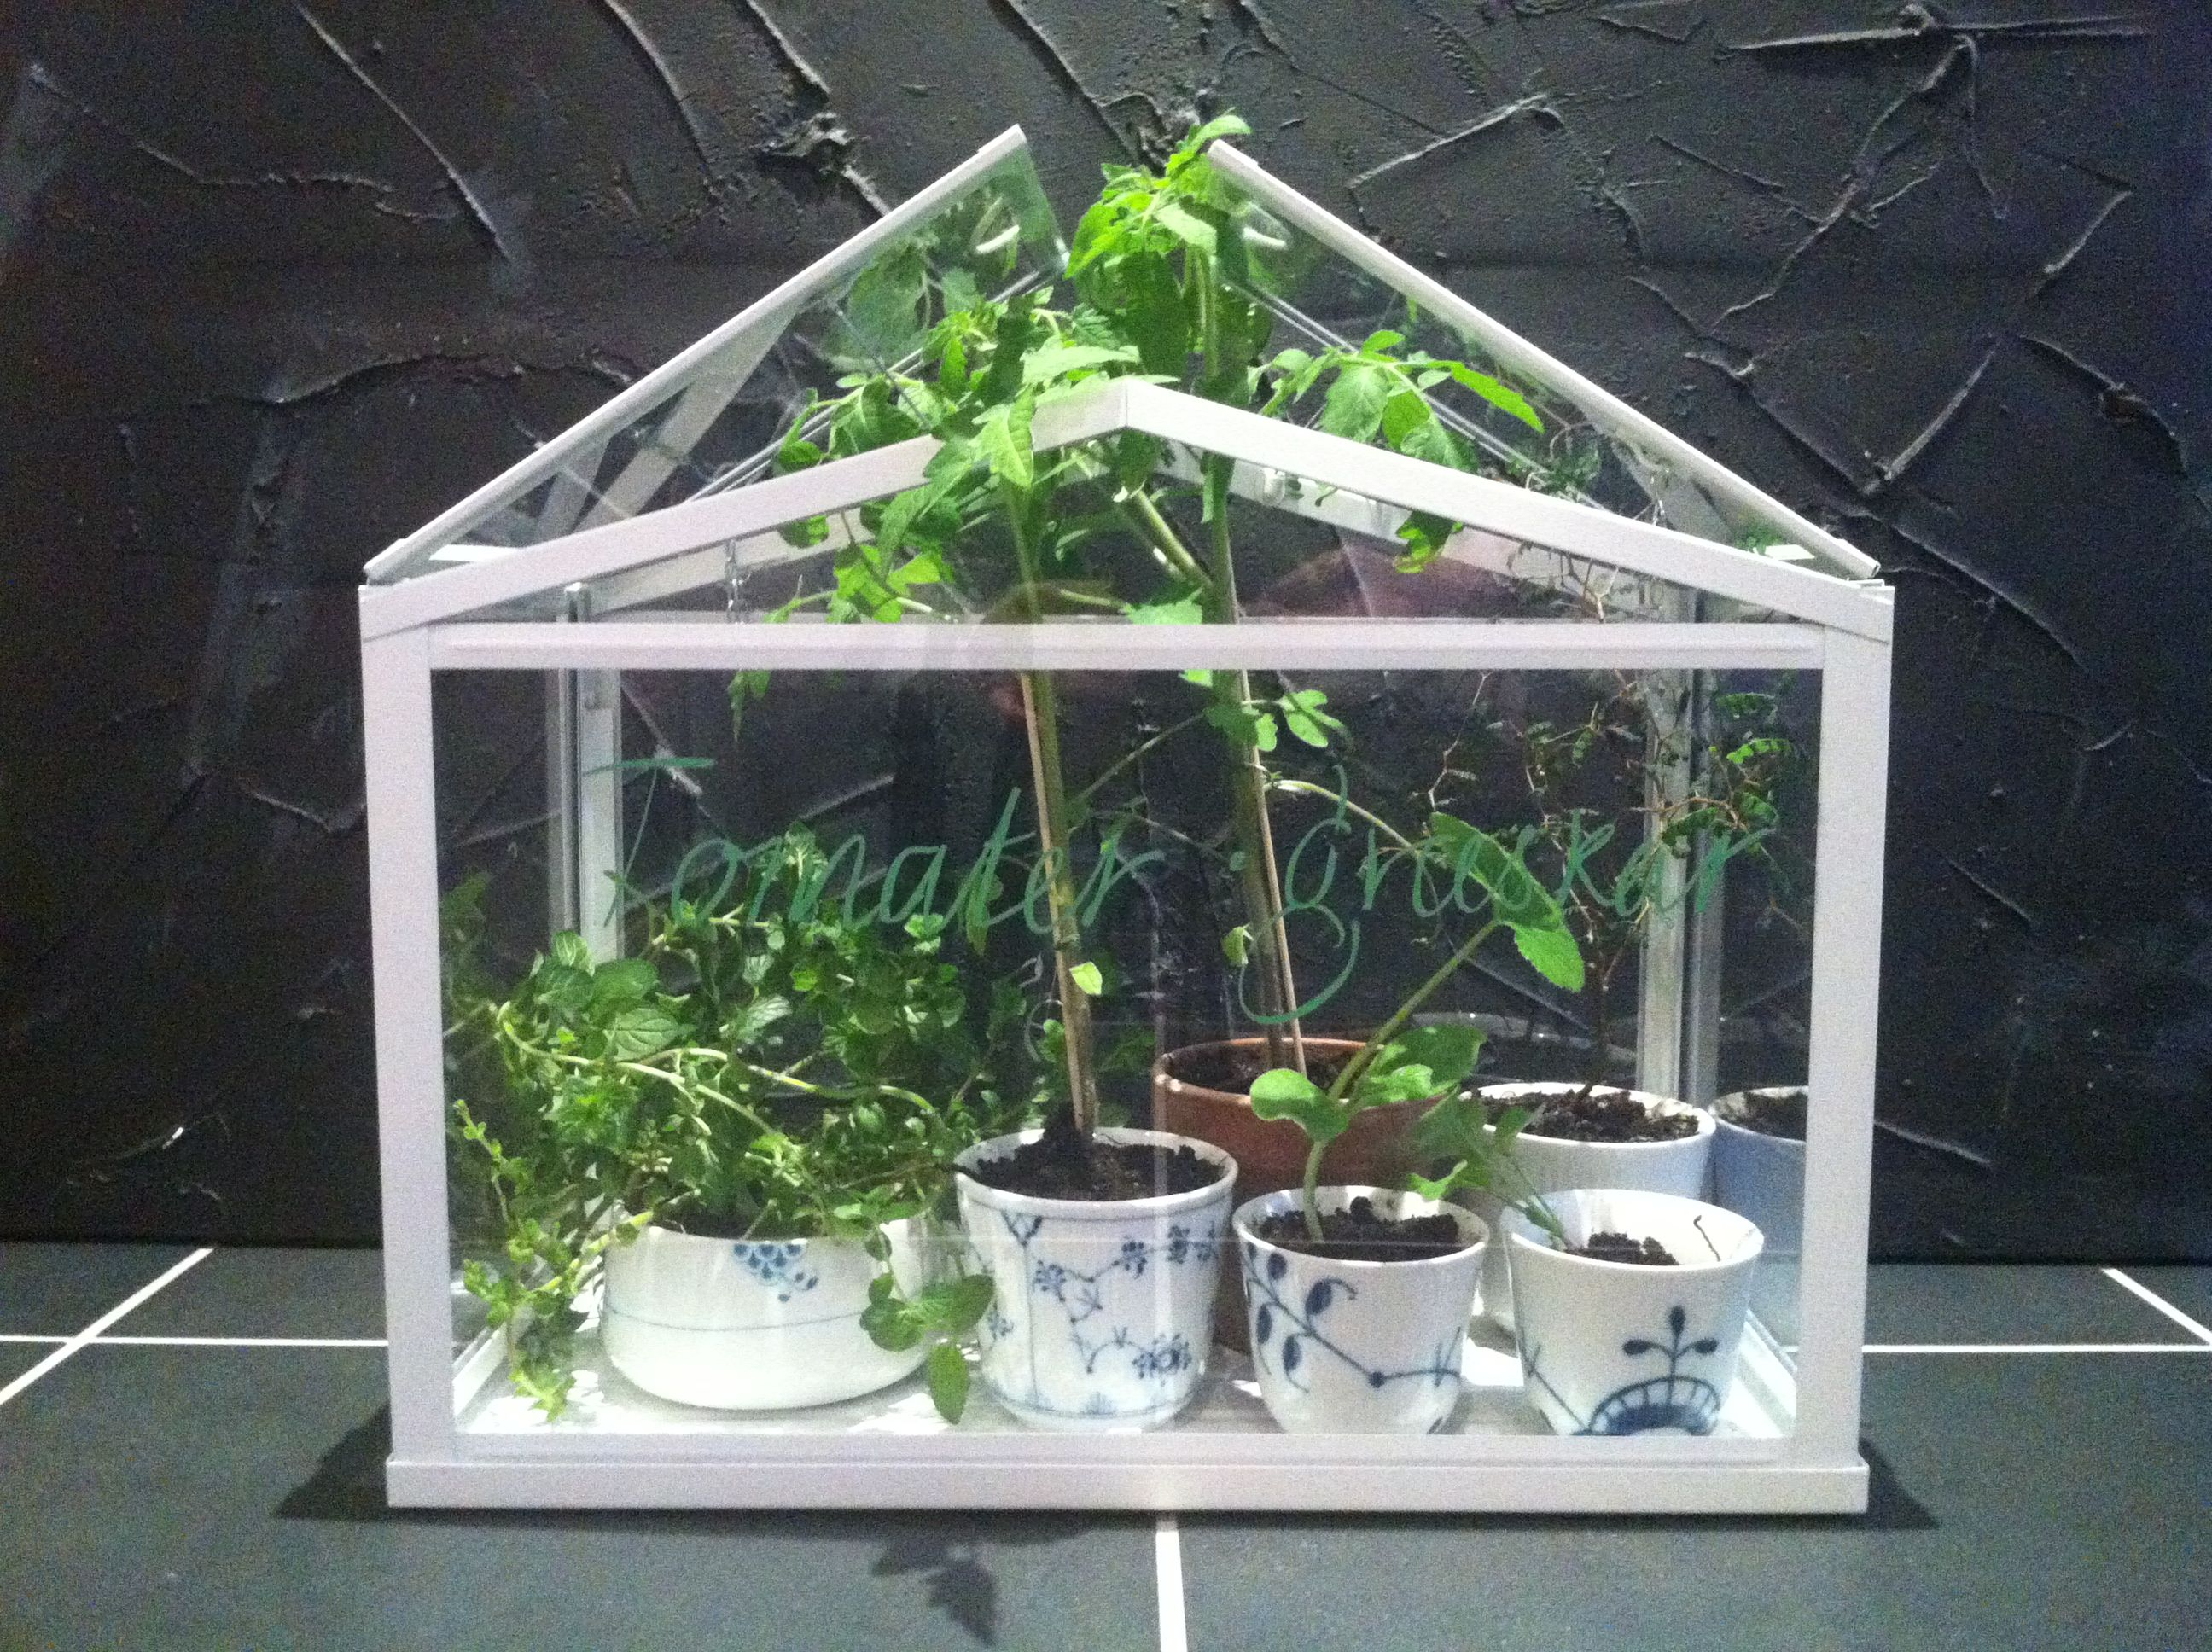 Ikea Mini Greenhouse, Royal Copenhagen Cups Photo Gallery